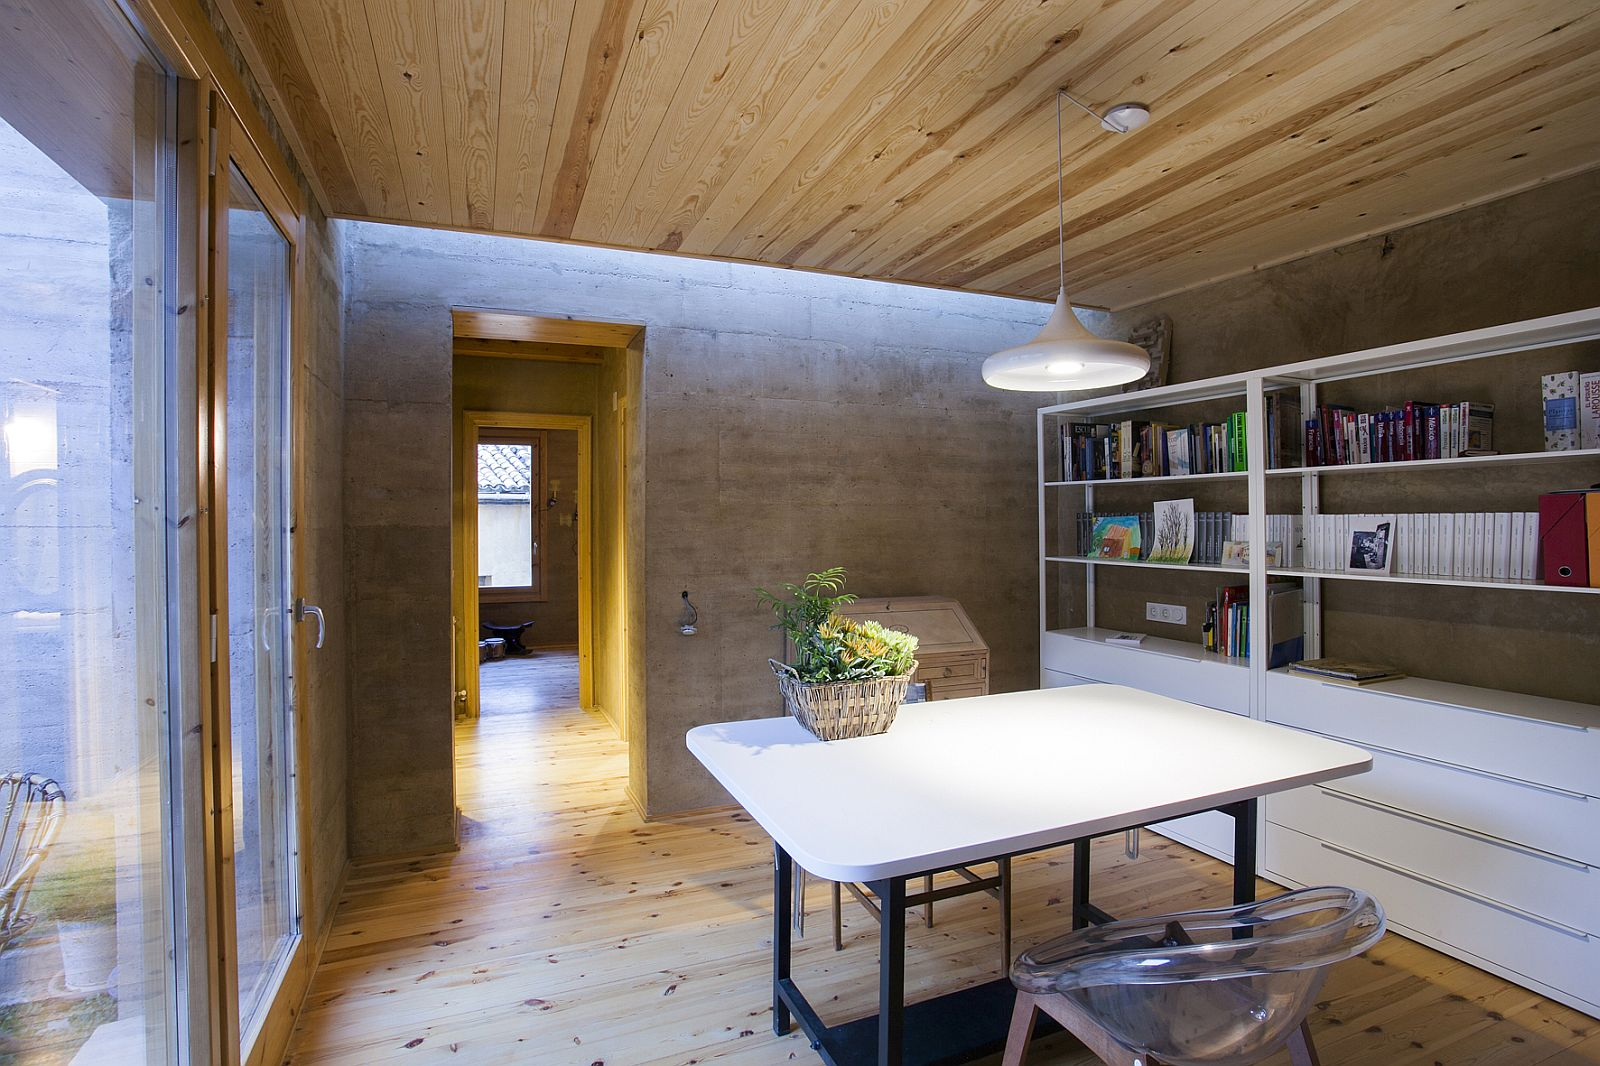 Architectural Revival: Sustainable Rammed Earth House in Spain